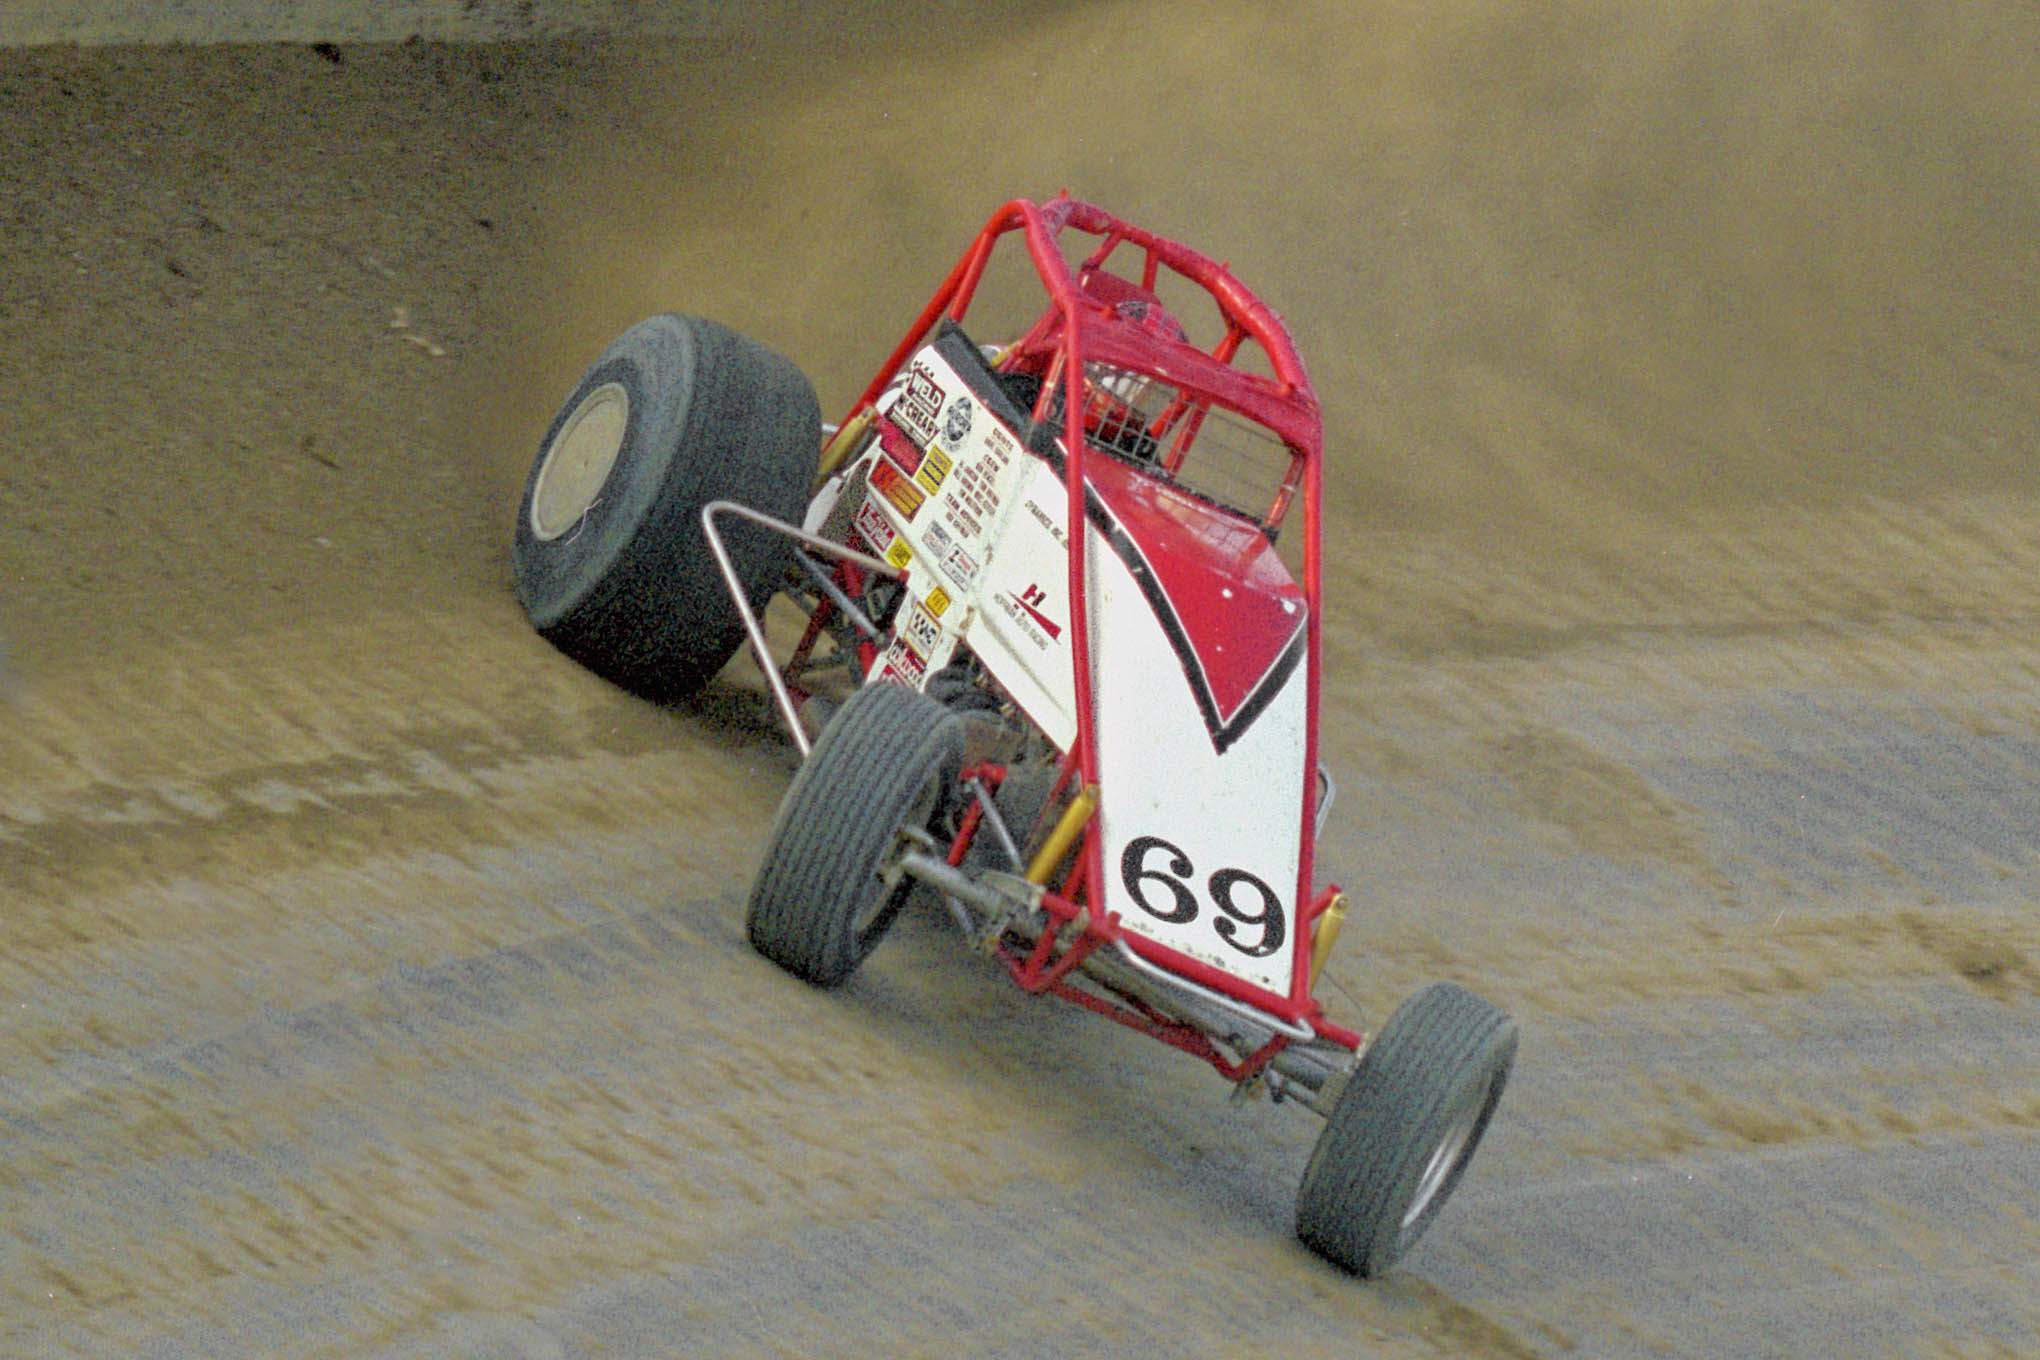 Dave Darland pours on the coal at  Eldora in 2009.